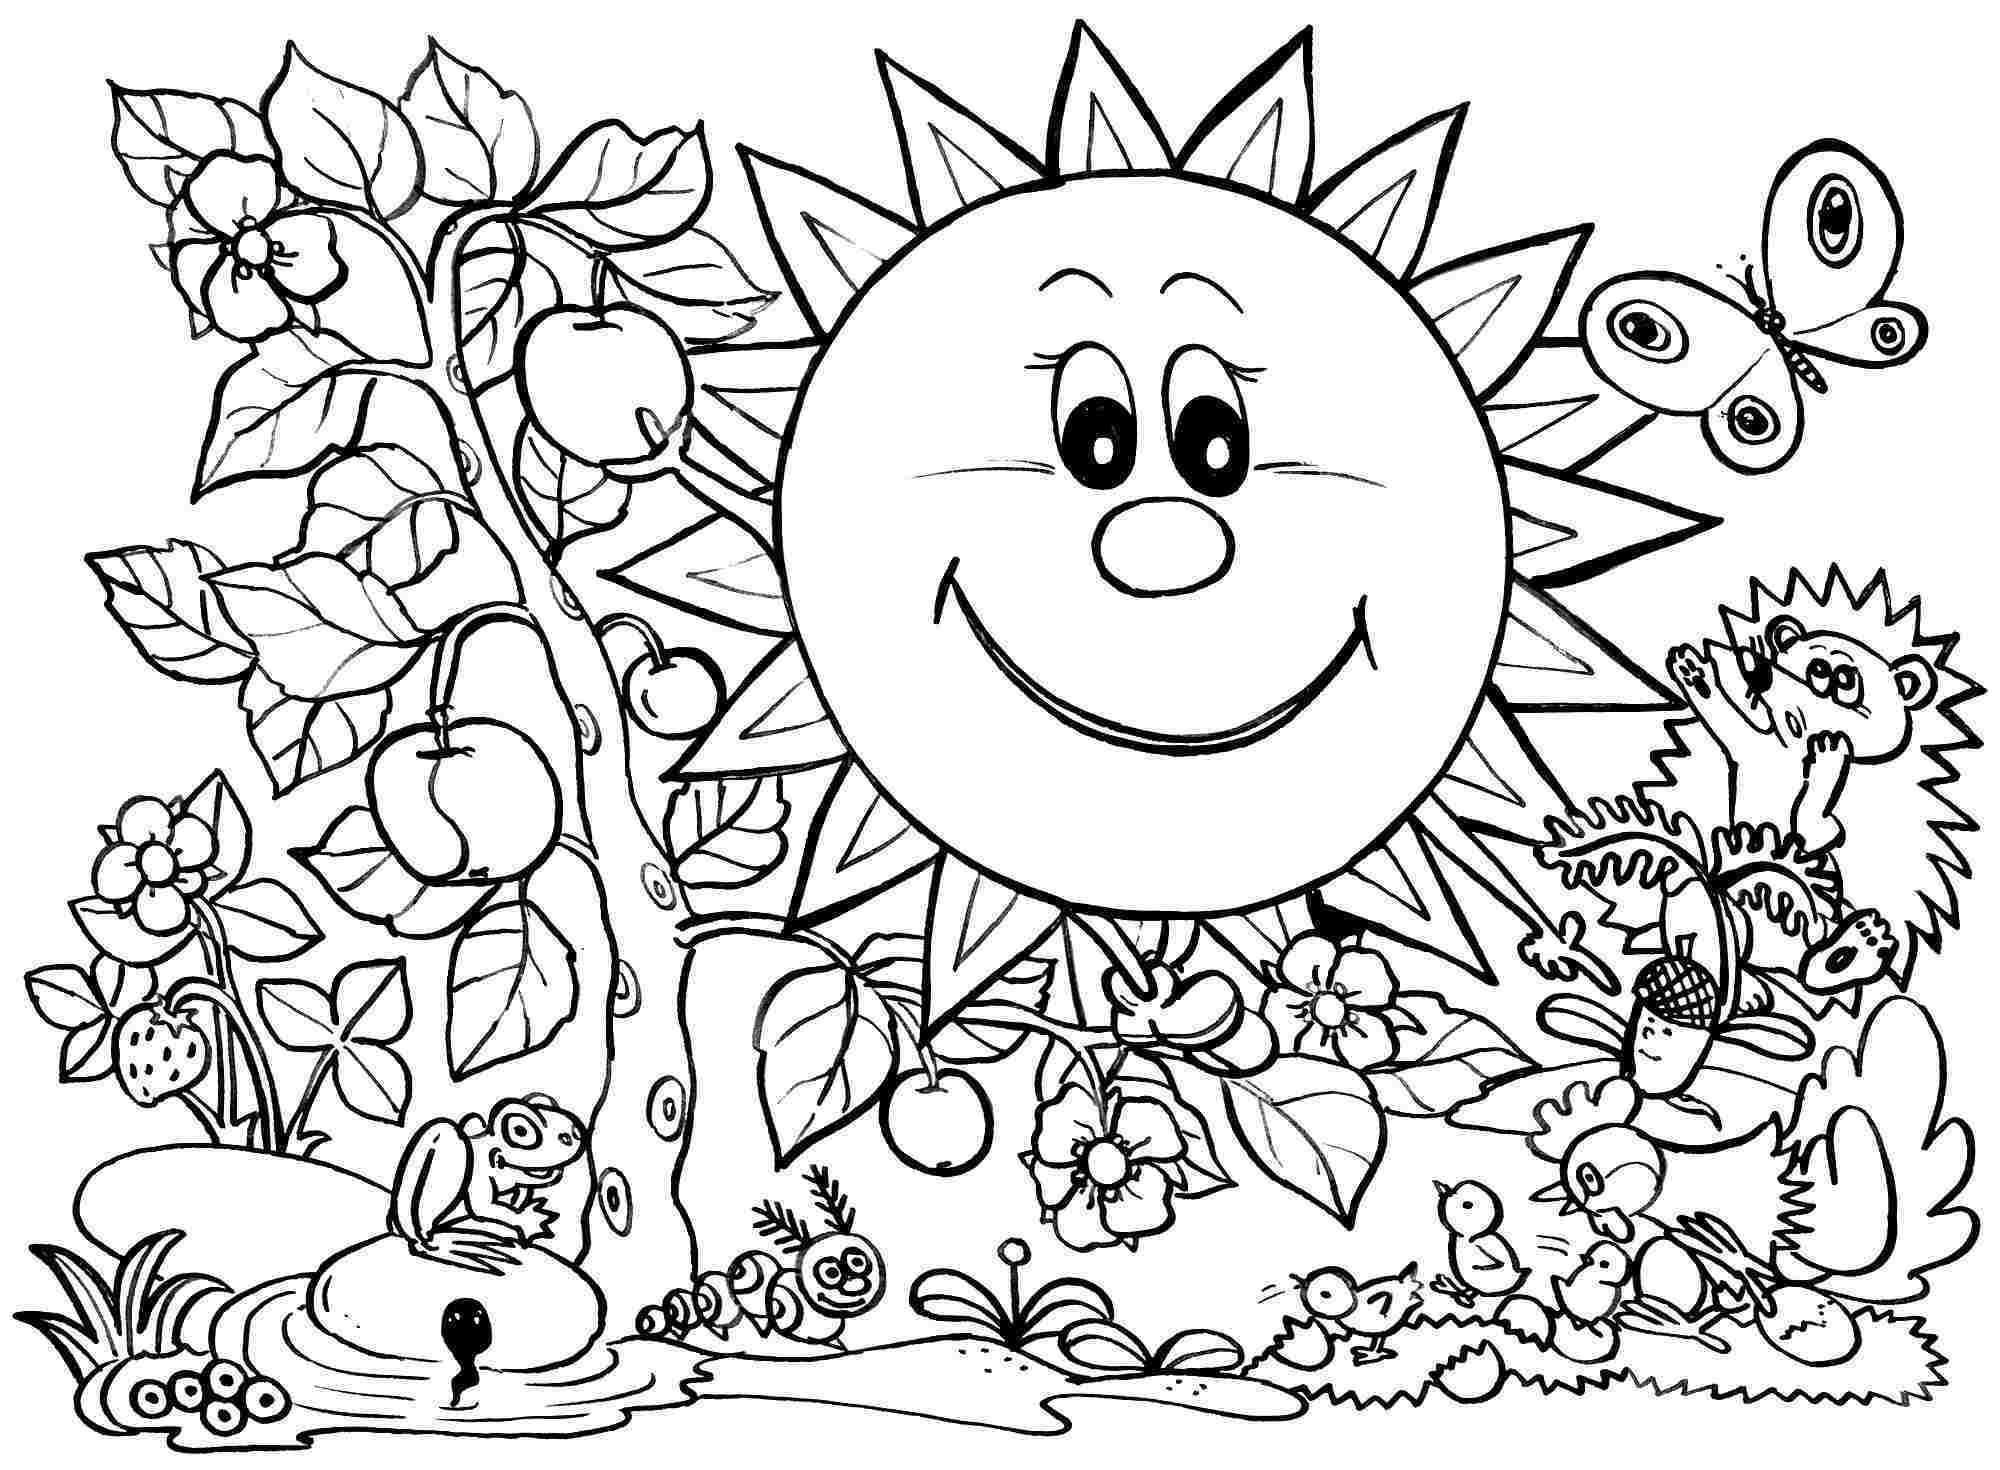 2000x1470 Best Springtime Coloring Pages Printable Image Of Colouring